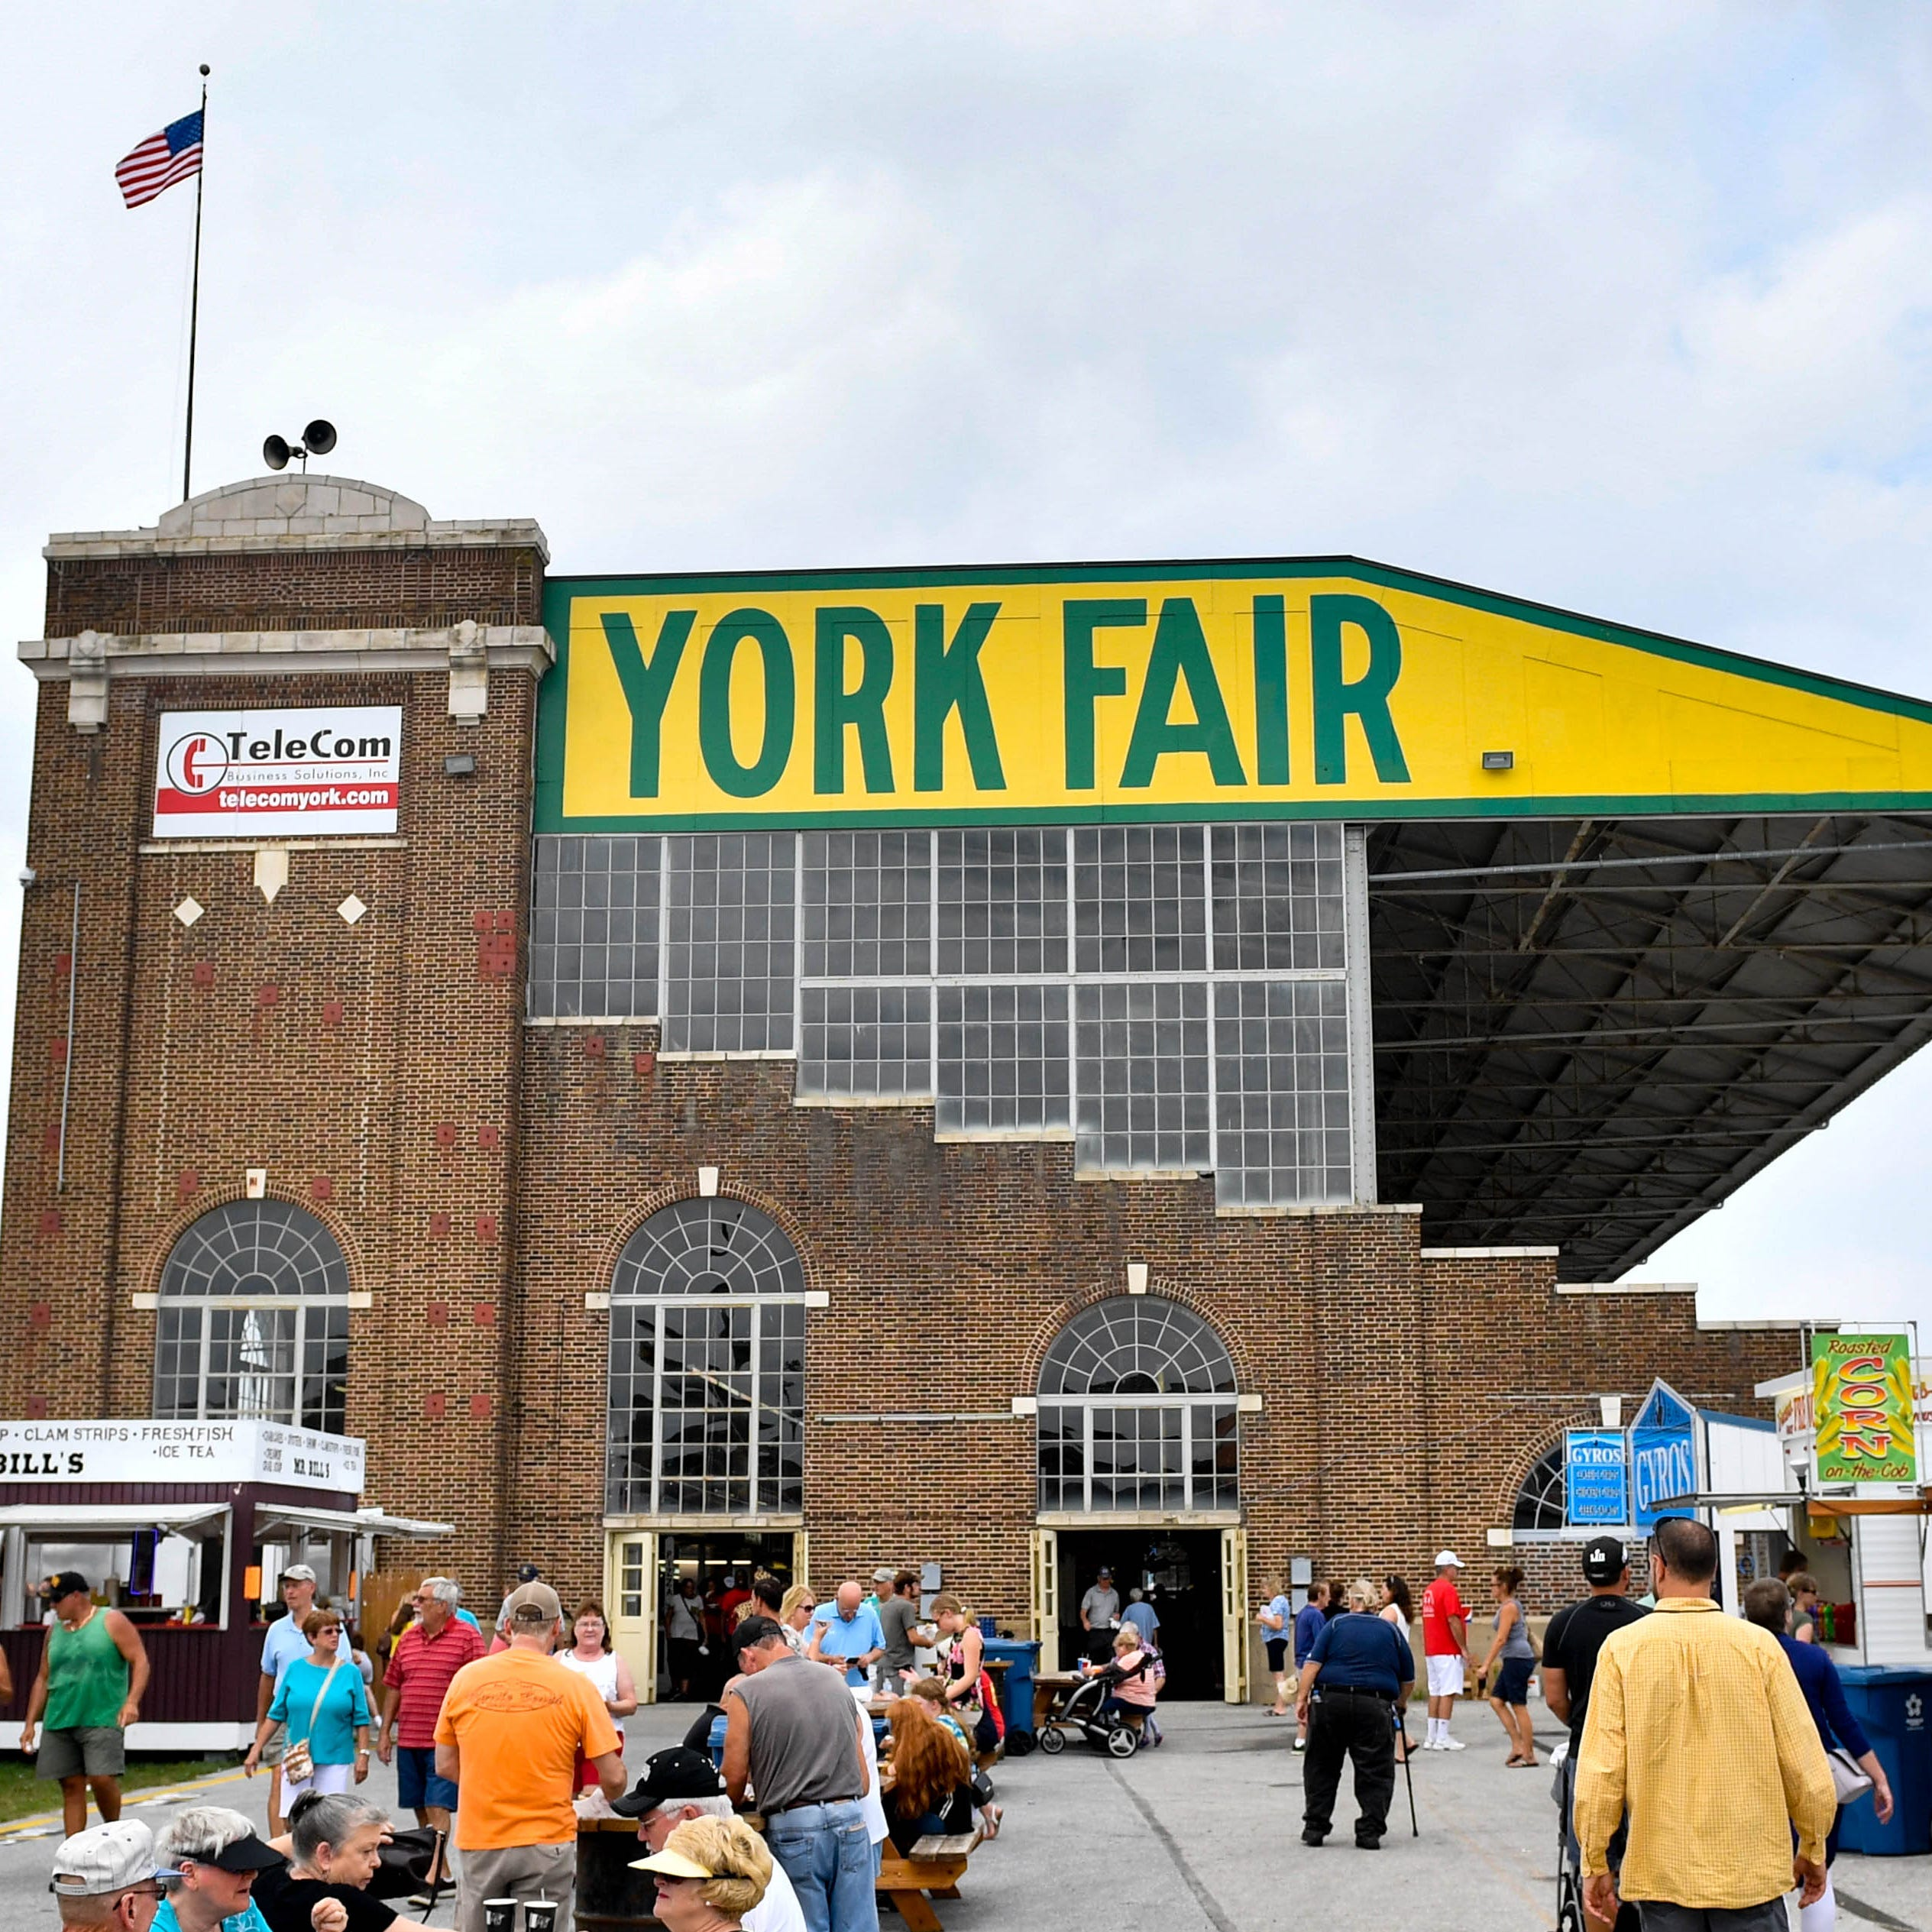 Blame it on the rain: Attendance down at York Fair this year, worst in decade